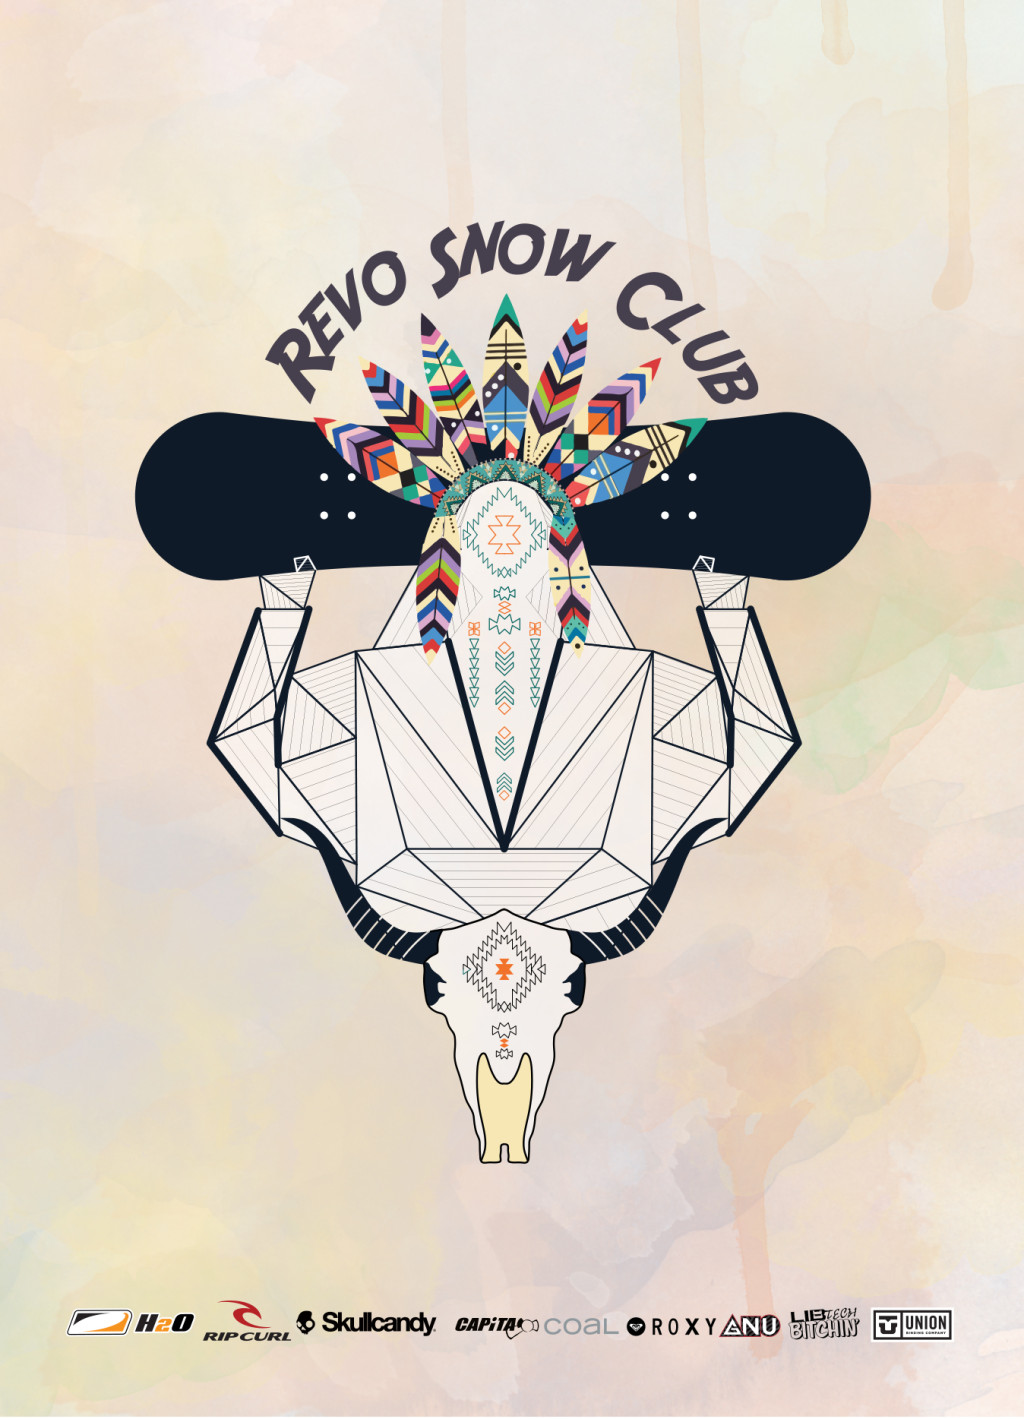 _Revo Snow Club _ Flayer A6